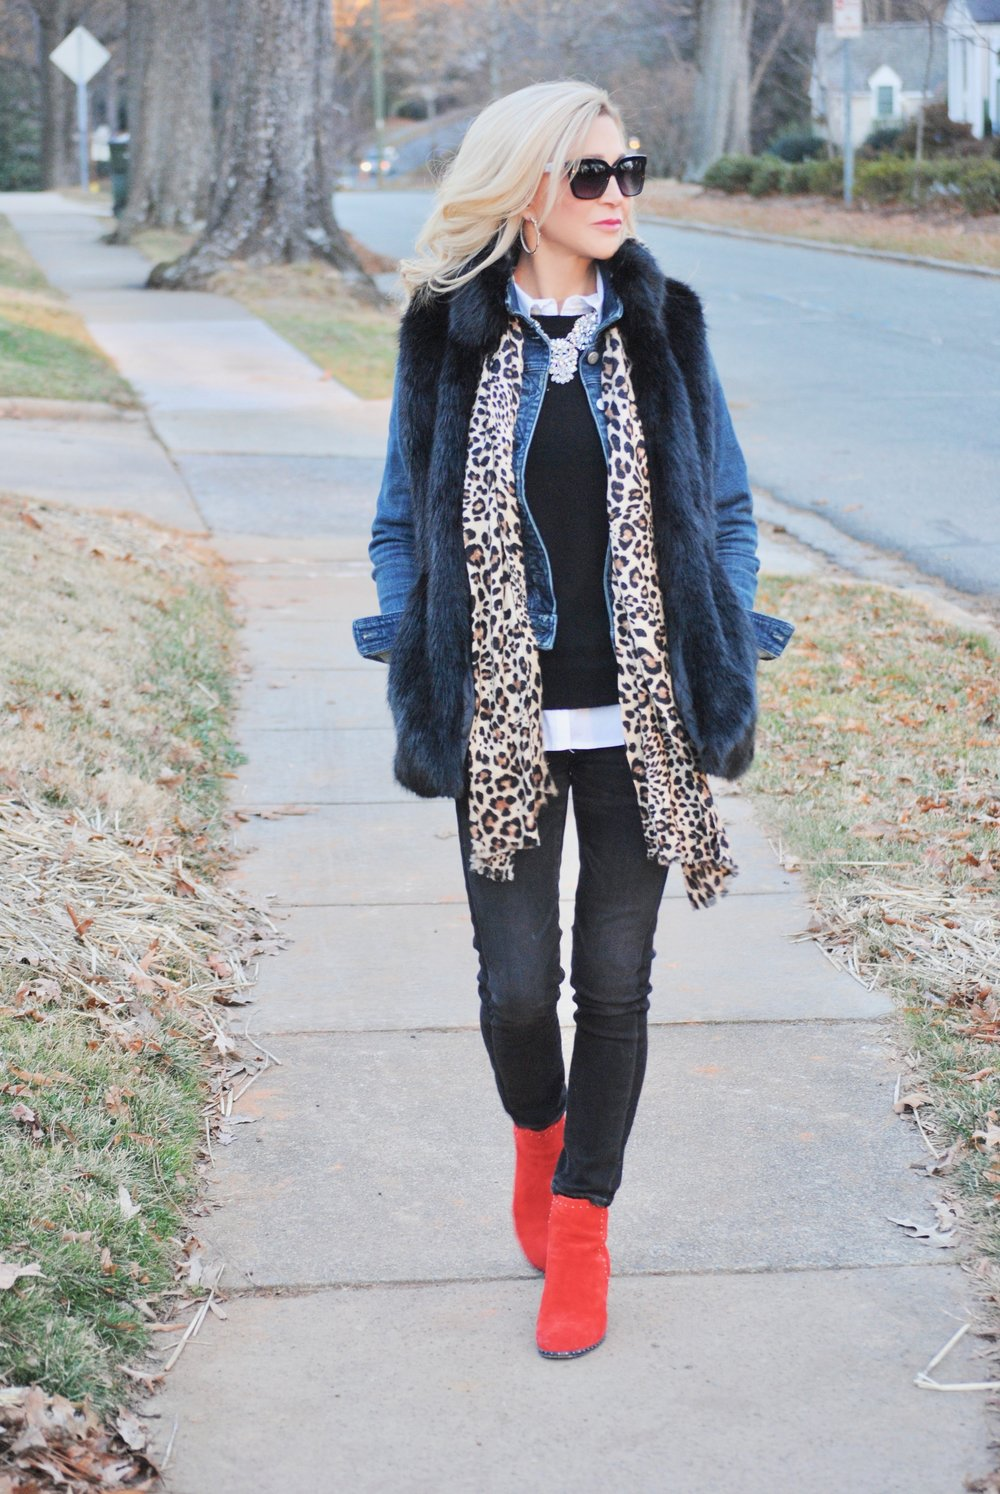 Layering for stye and warmth